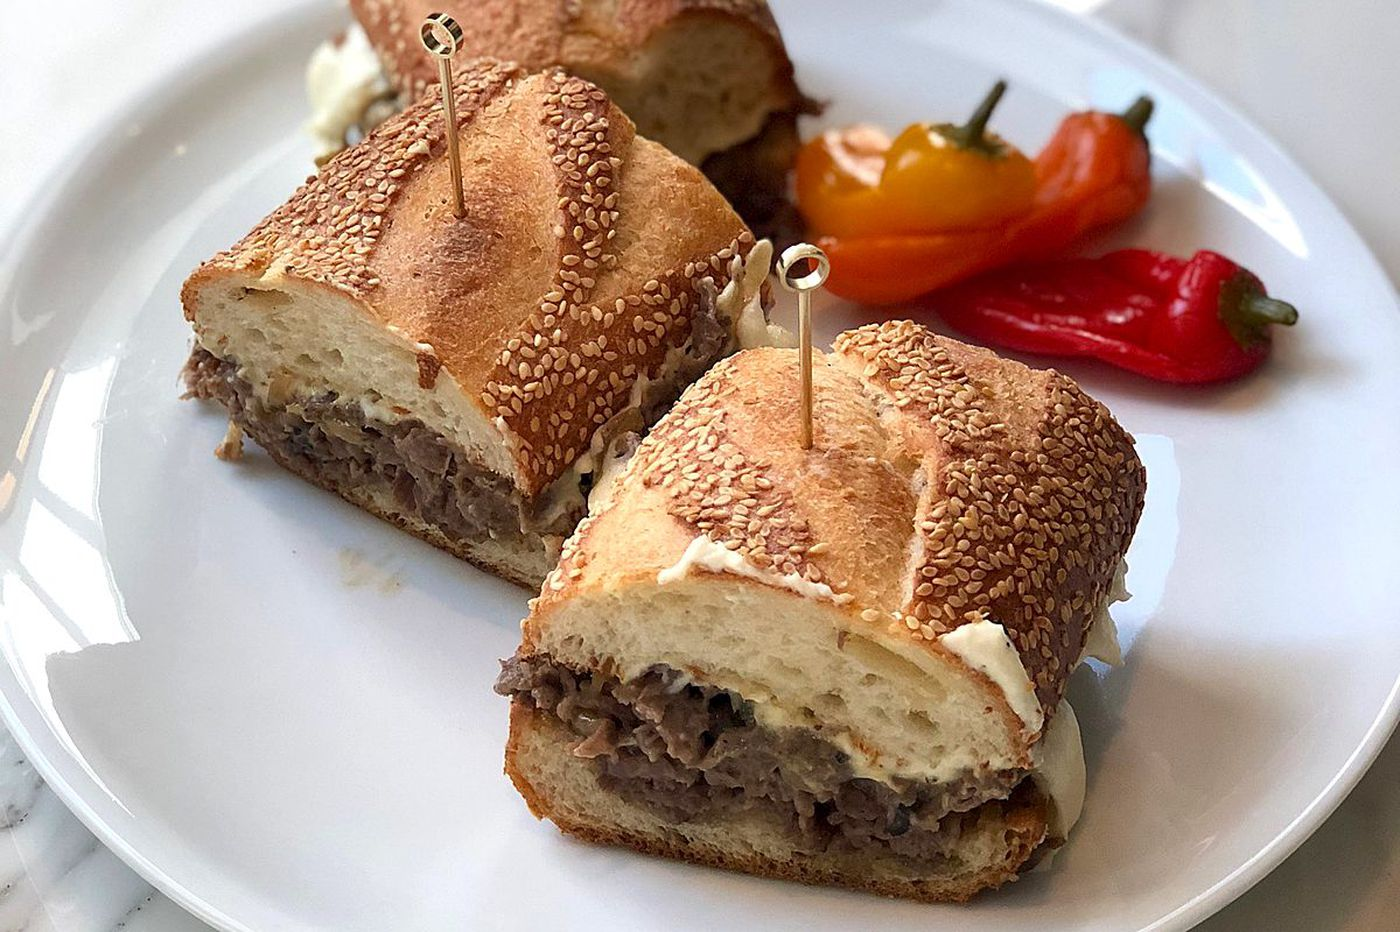 There's a $120 cheesesteak, at Barclay Prime